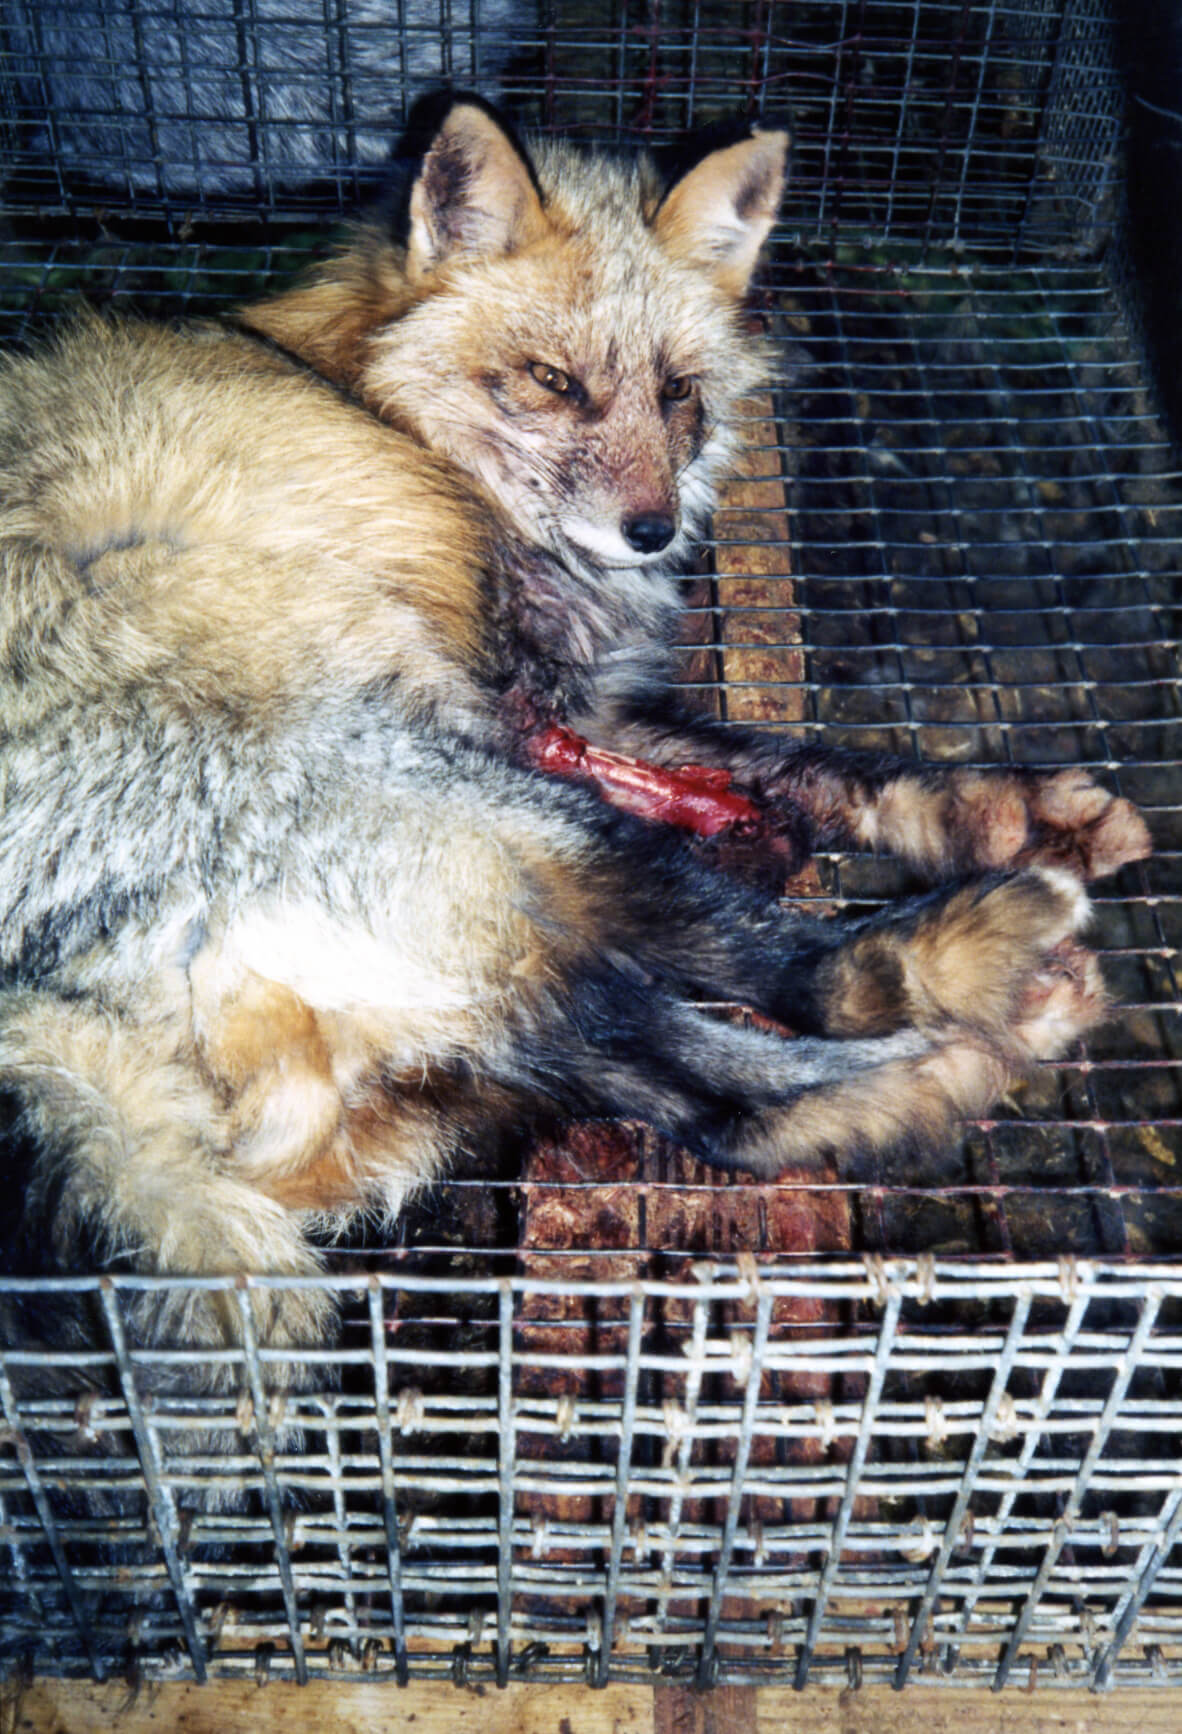 Animals Used for Fur | PETA